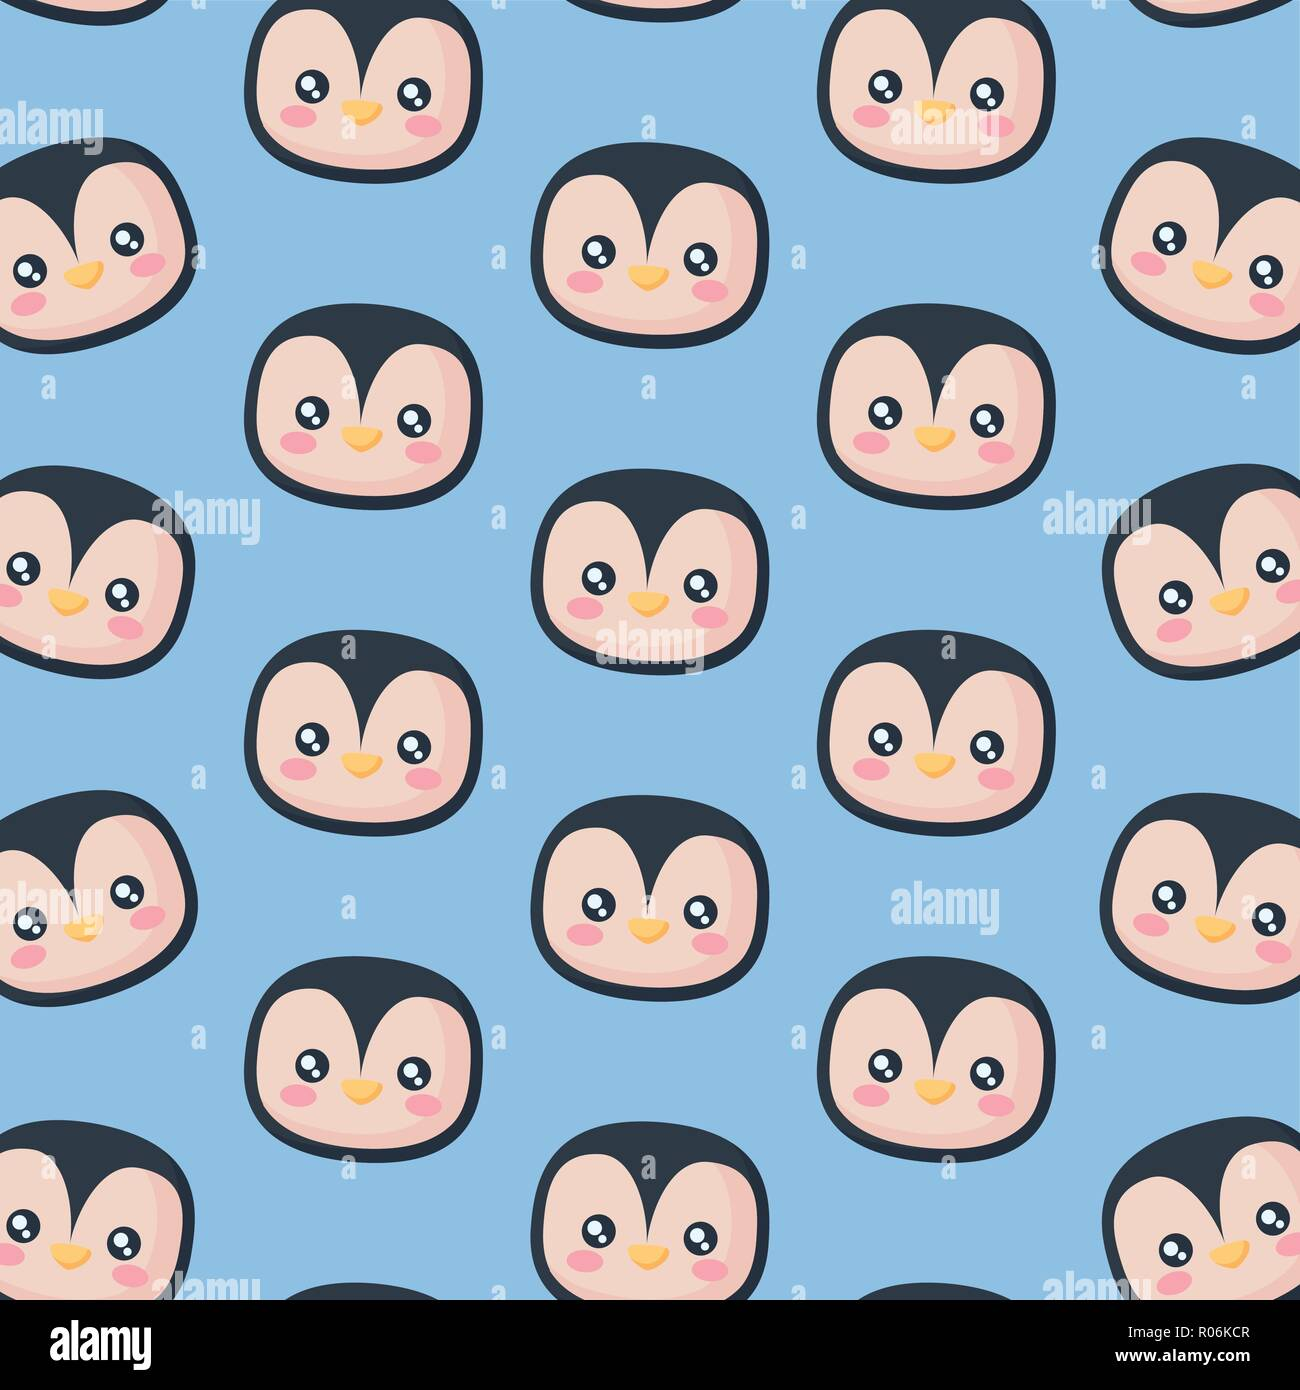 head of penguin icon pattern vector illustration design - Stock Vector